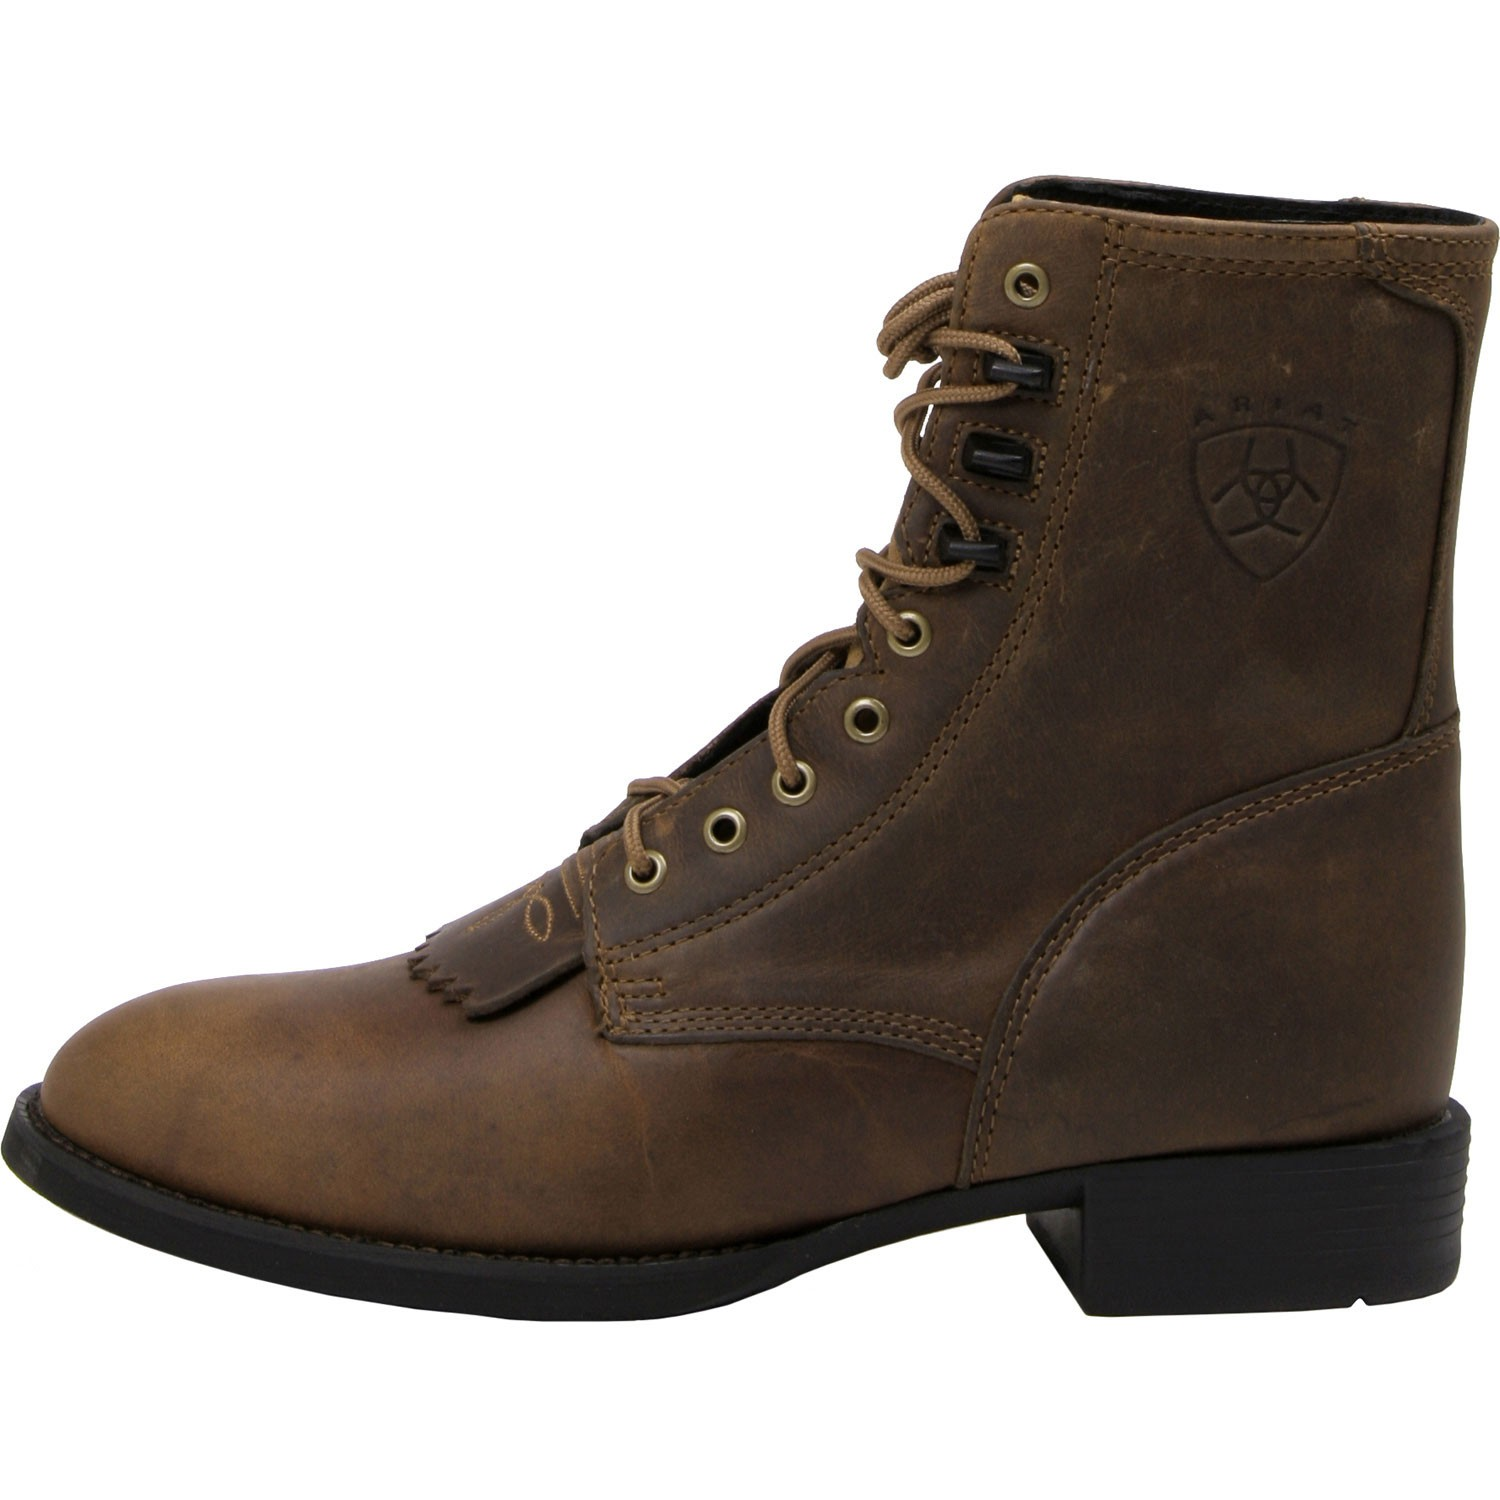 Ariat Lace Up Boots D4svlUCL